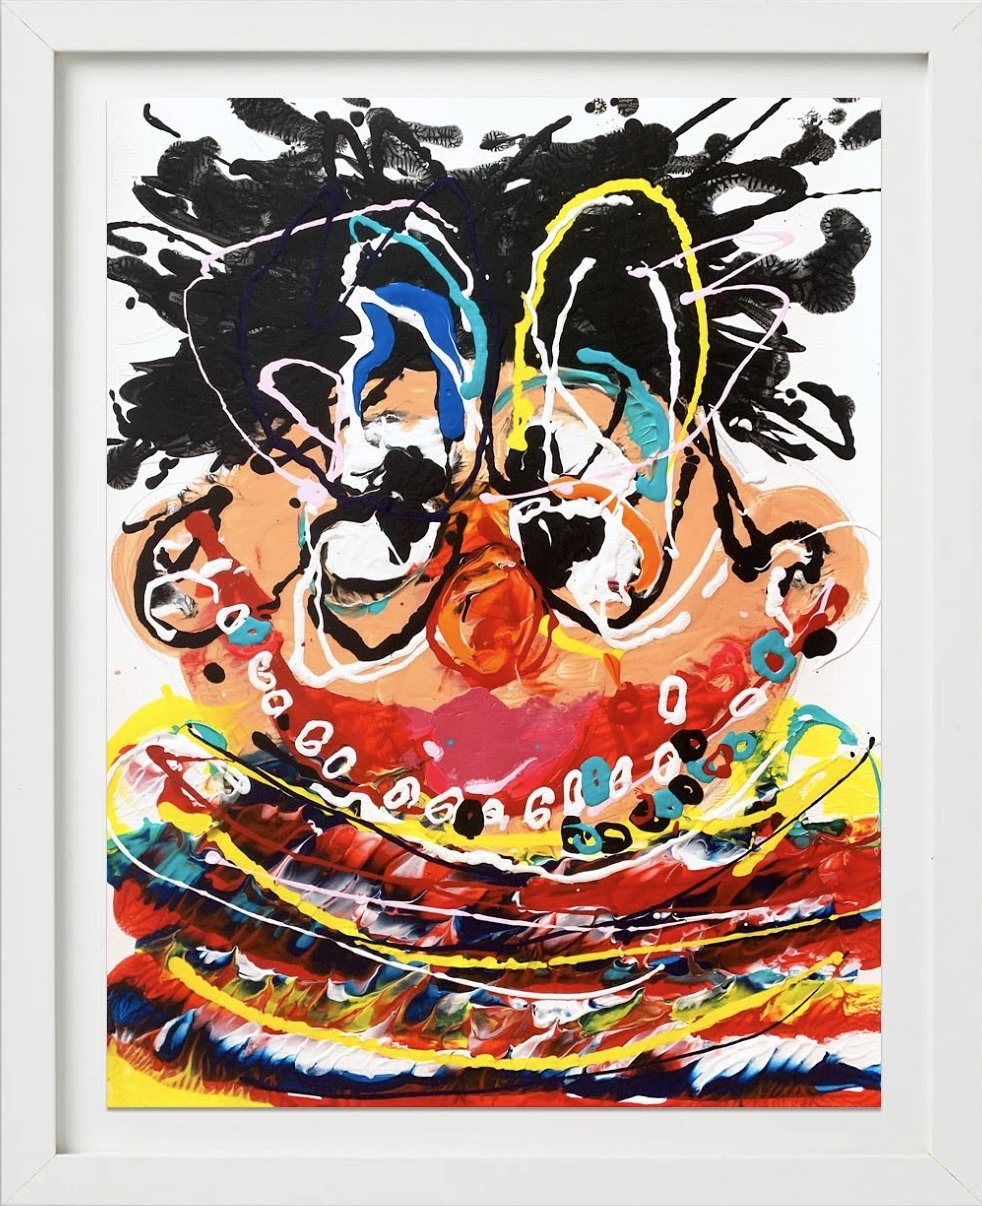 Upside Down World No. 2 by John Paul Fauves